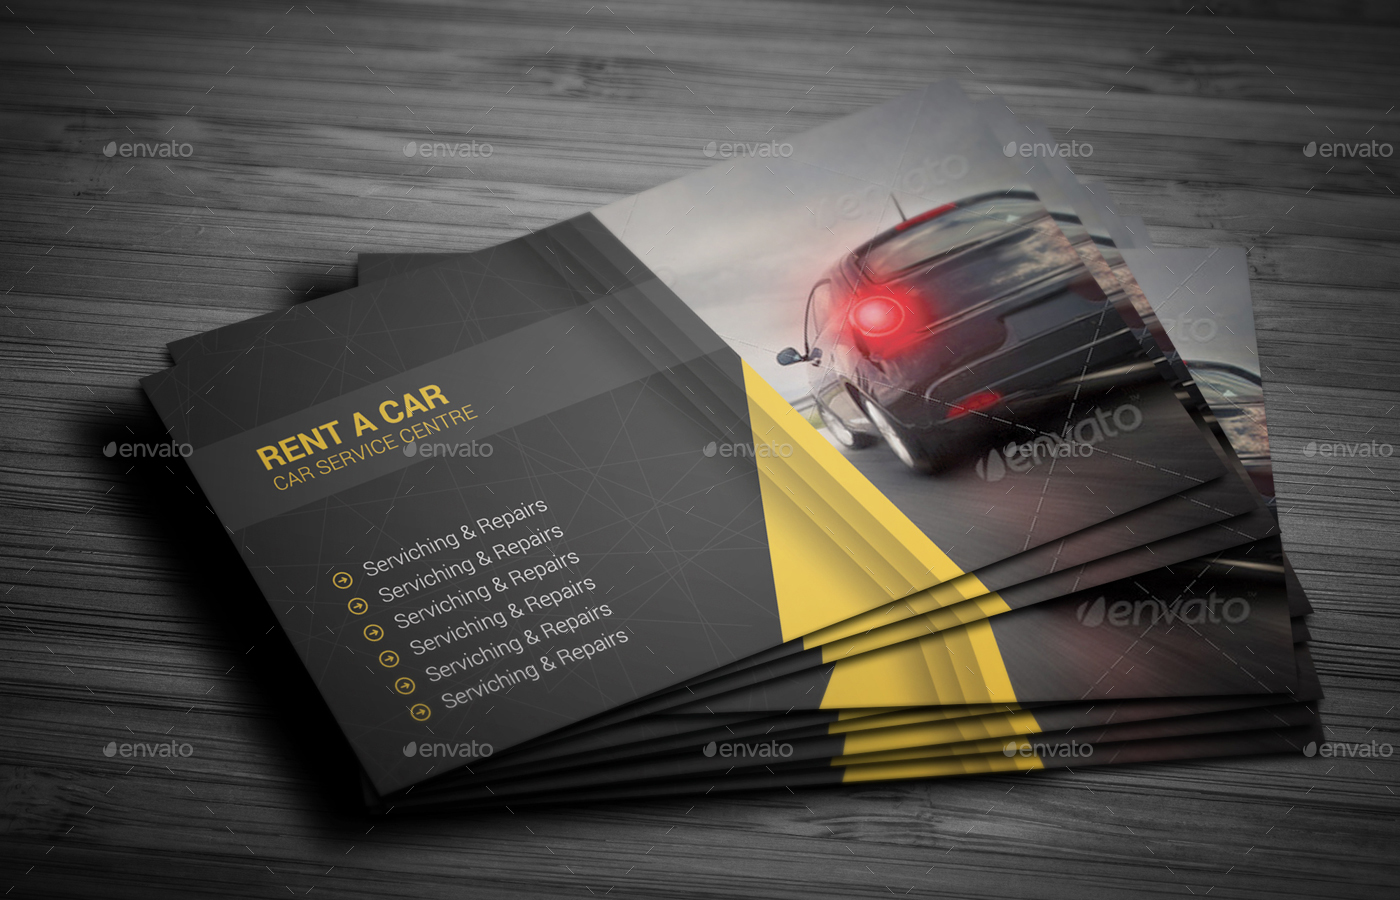 Rent a car business card bundle by vejakakstudio graphicriver rent a car business card bundle creative business cards preview01g preview02g preview03g preview04g preview05g colourmoves